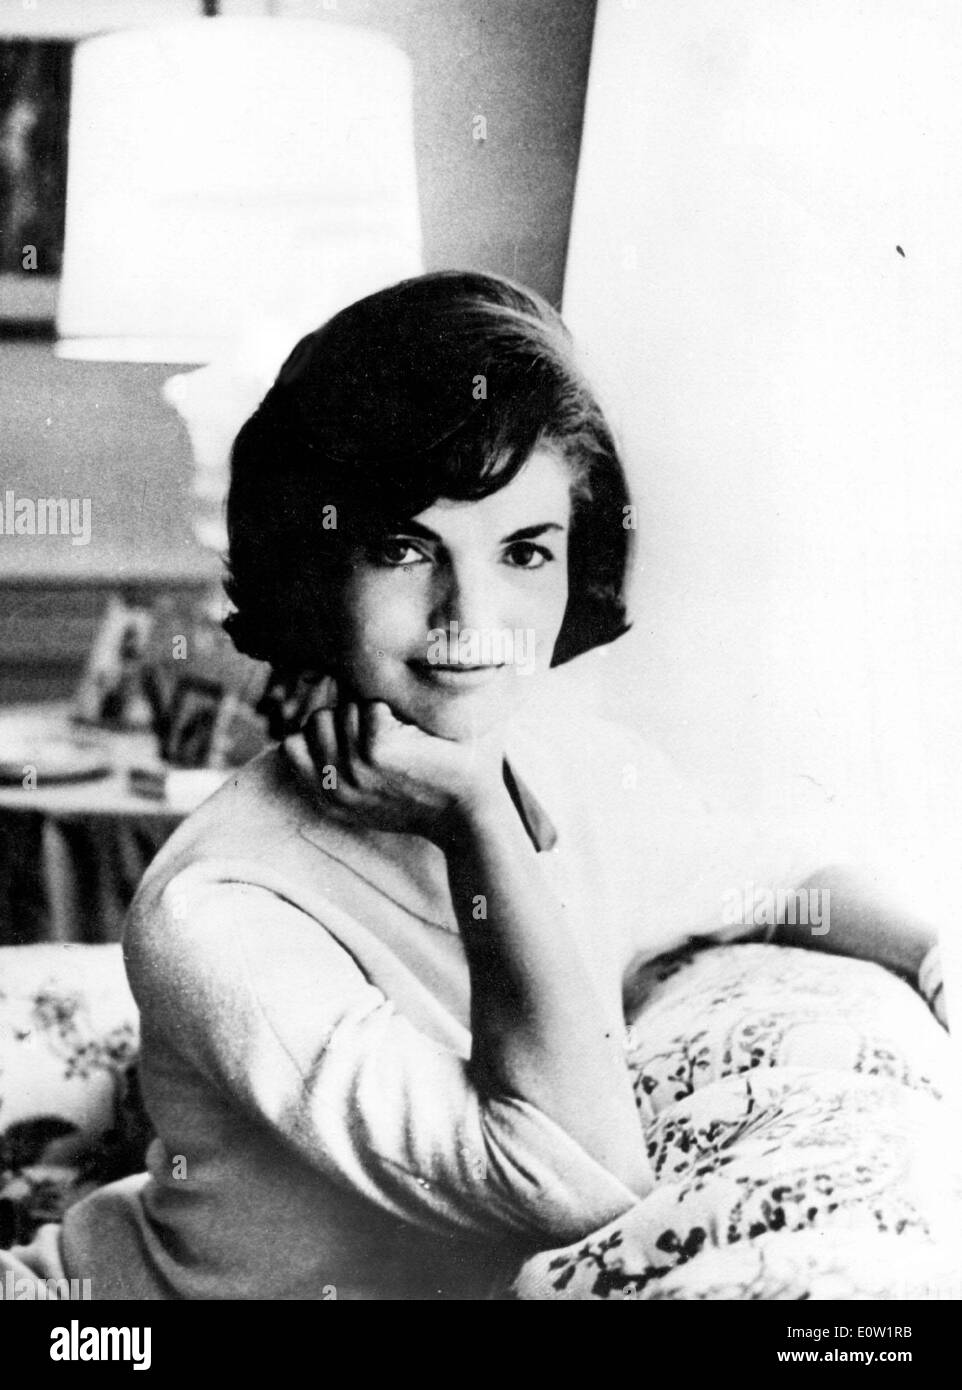 Portrait of First Lady Jackie Kennedy sitting on the sofa - Stock Image